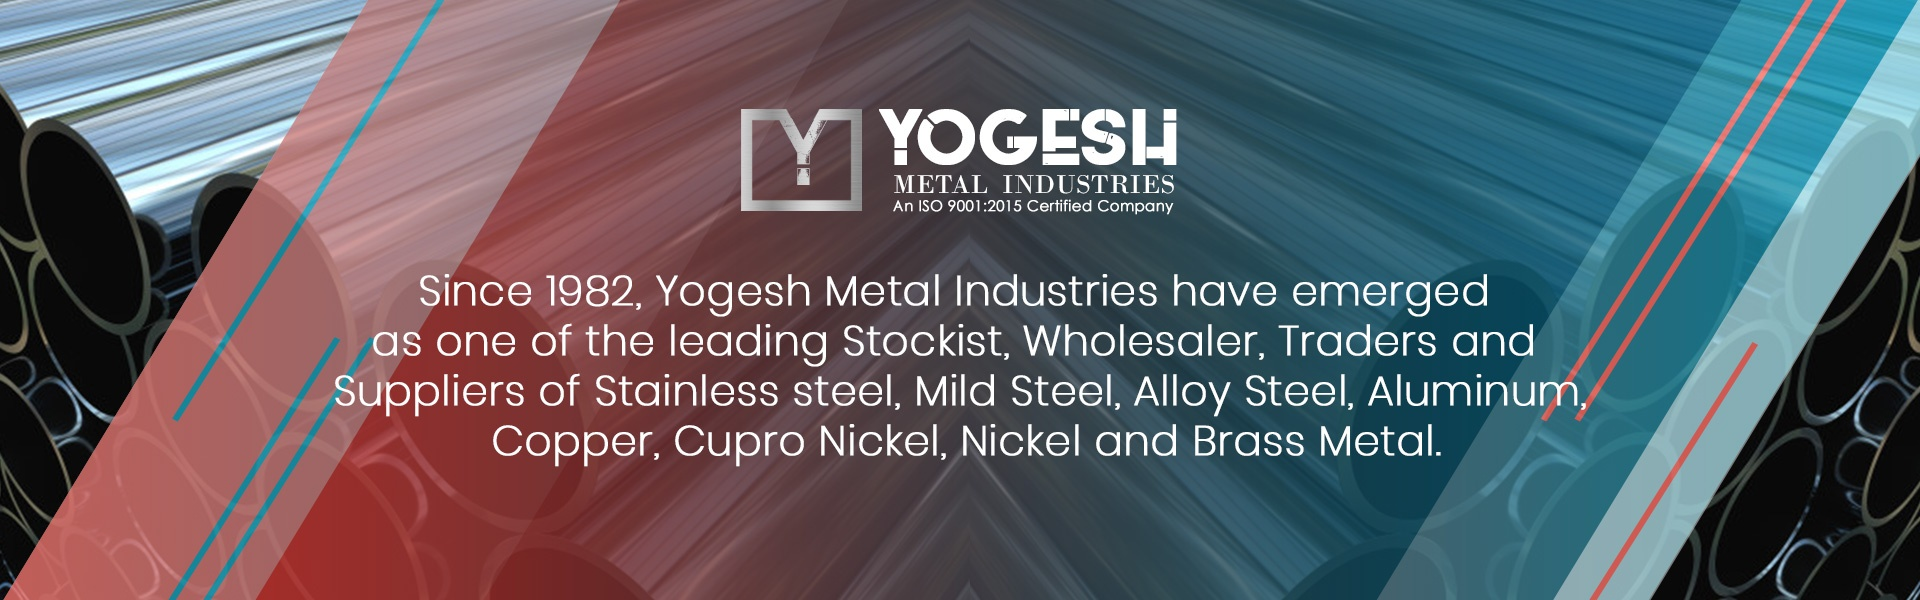 stainless steel manufacturer India, metal industry in india